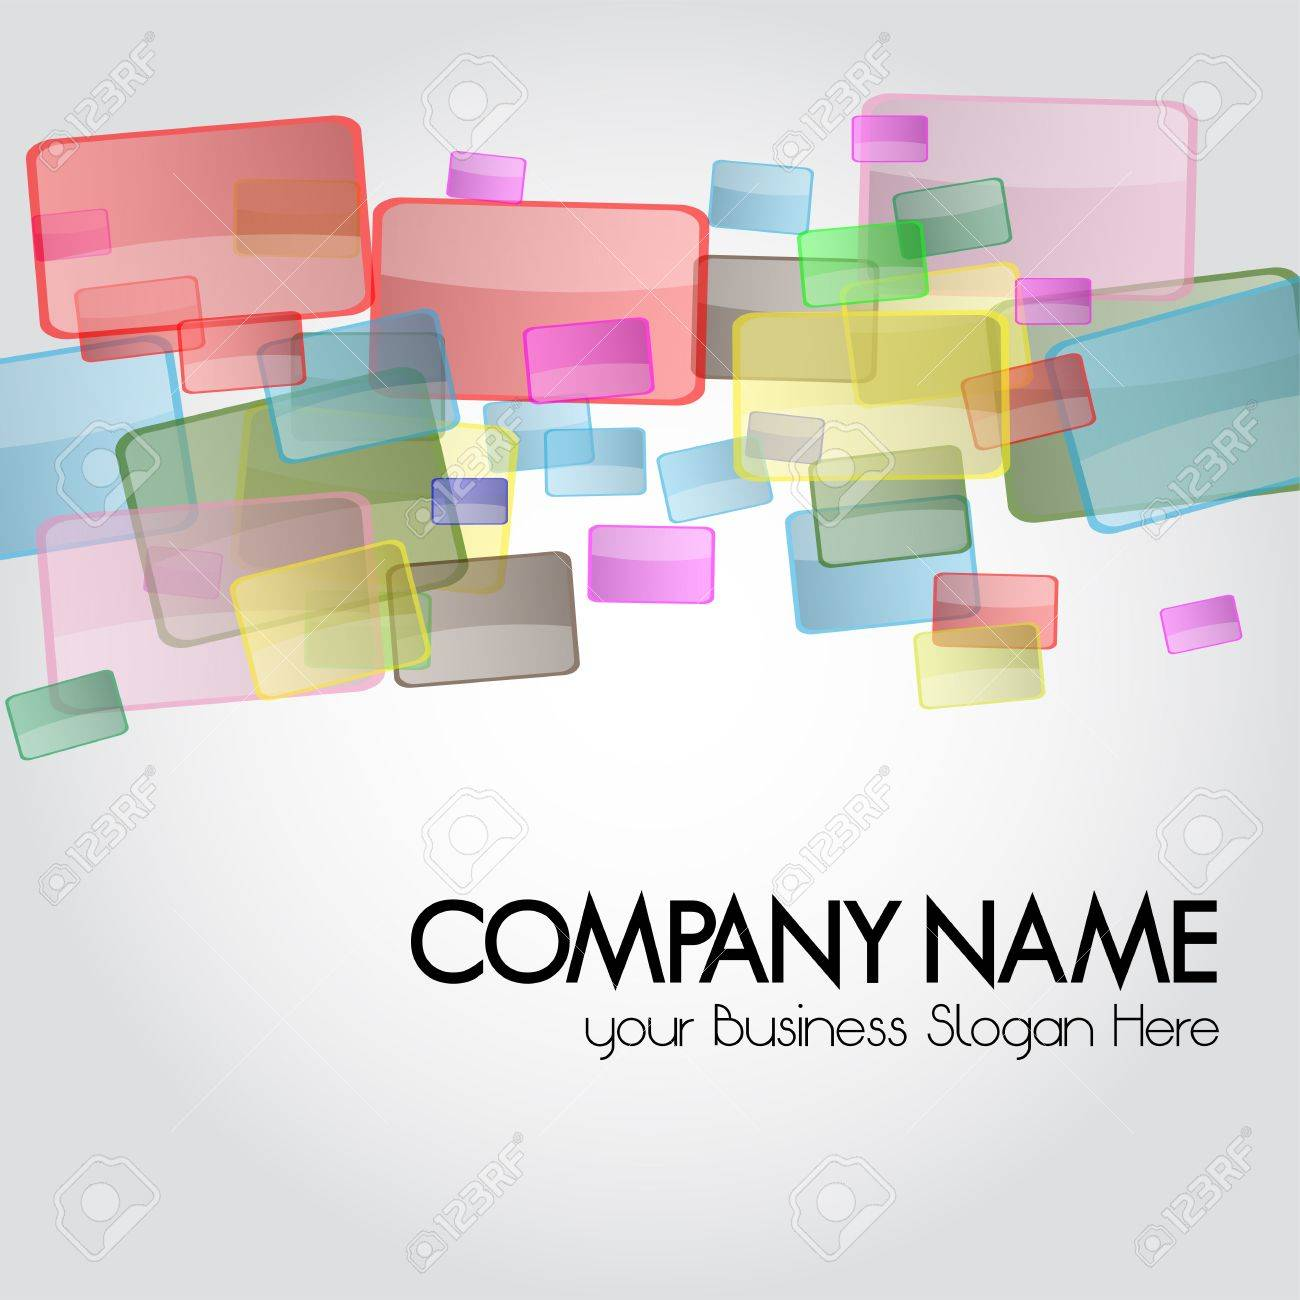 Business card or Design Background for stationary  A business multicolored background for the Contemporary Company Design, perfect for stationary Stock Vector - 16726712